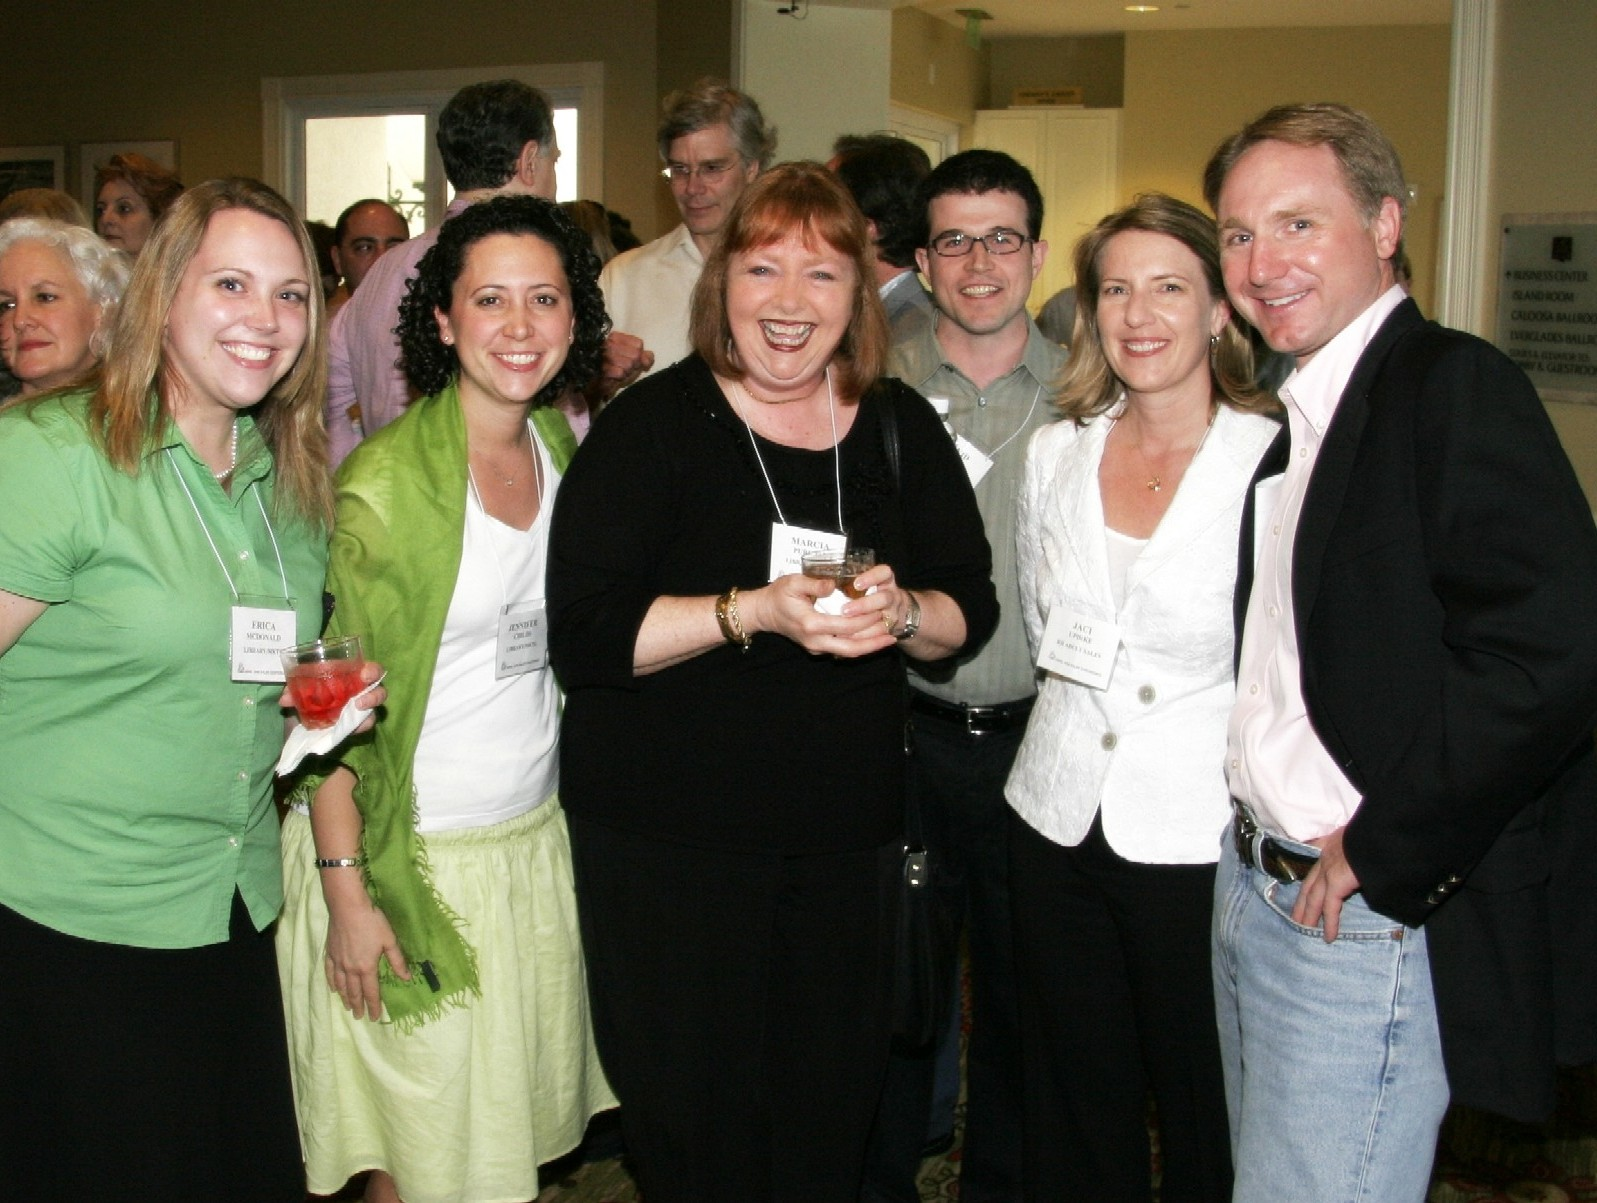 dan-brown-sales-conference-2006jpg2